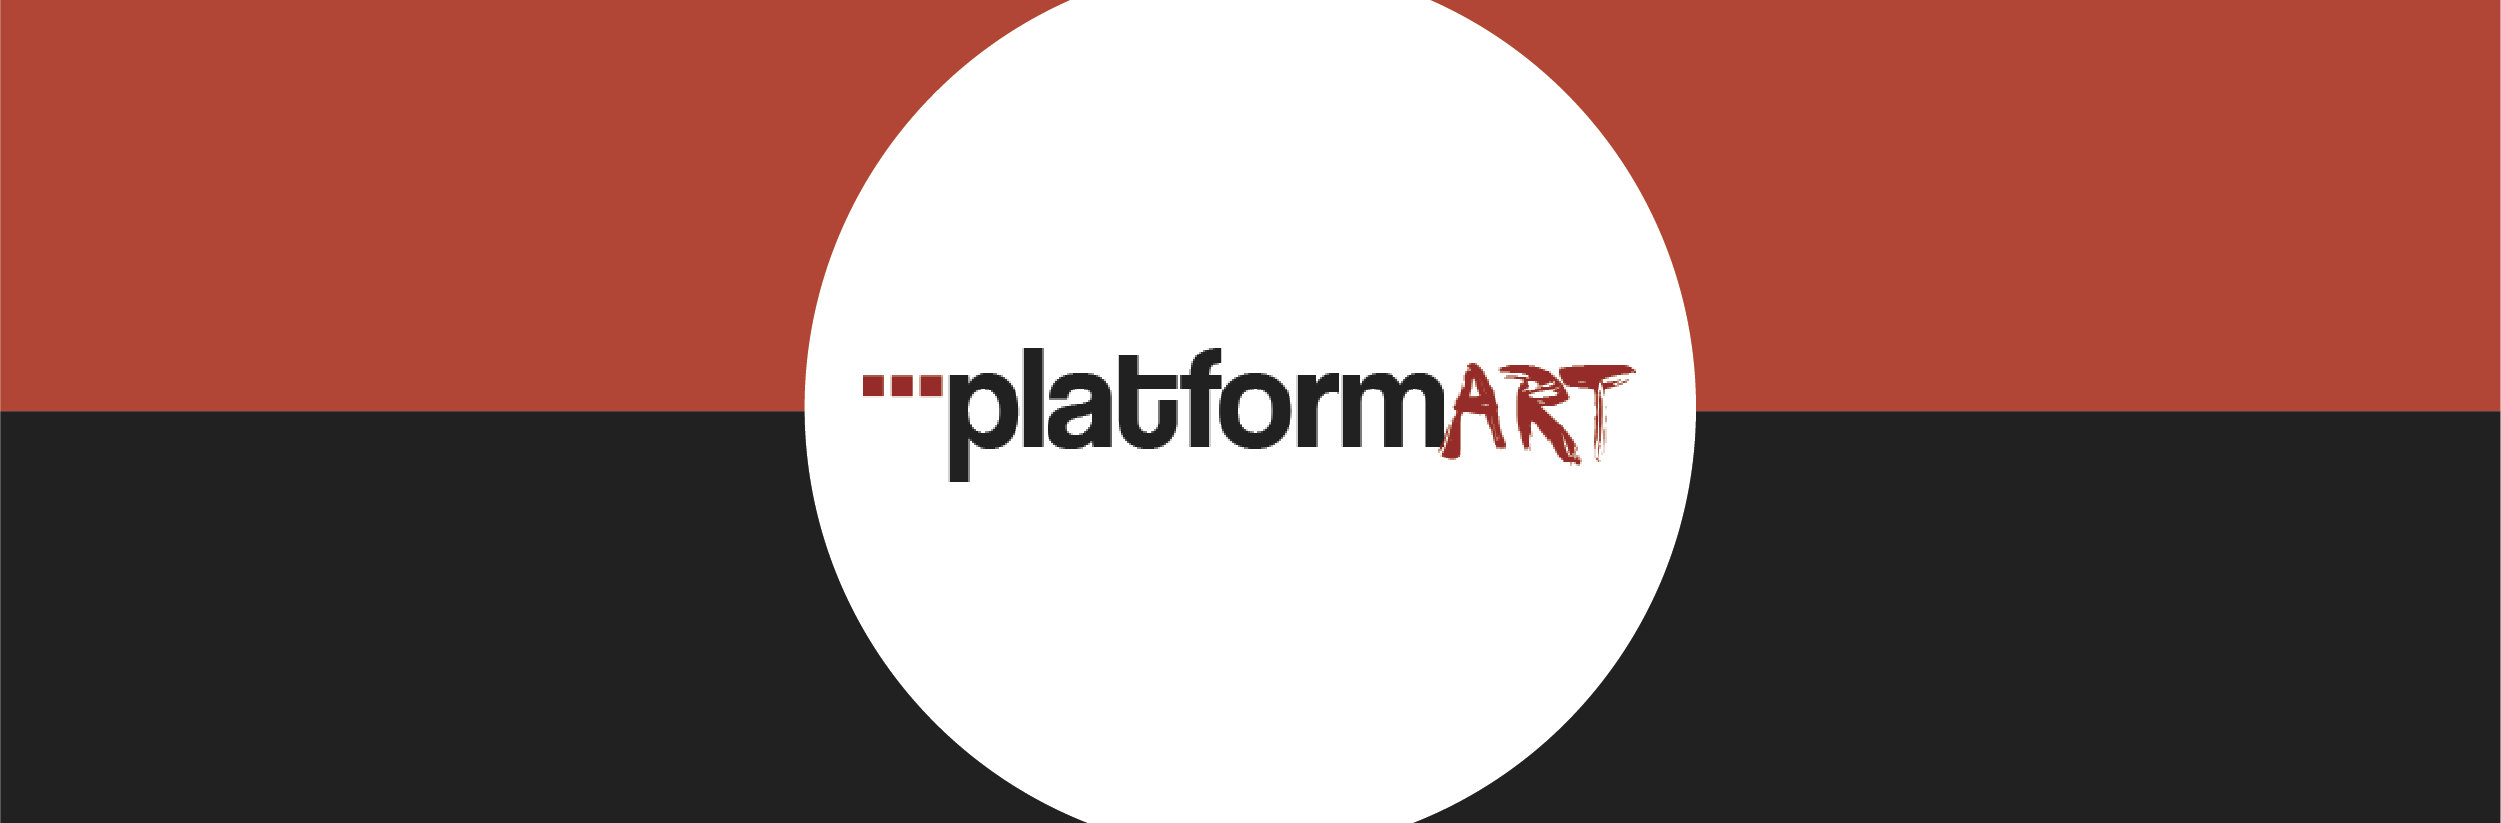 CORE Wealth Advisors, Inc. presents Platform Art Patrons & Members Reception